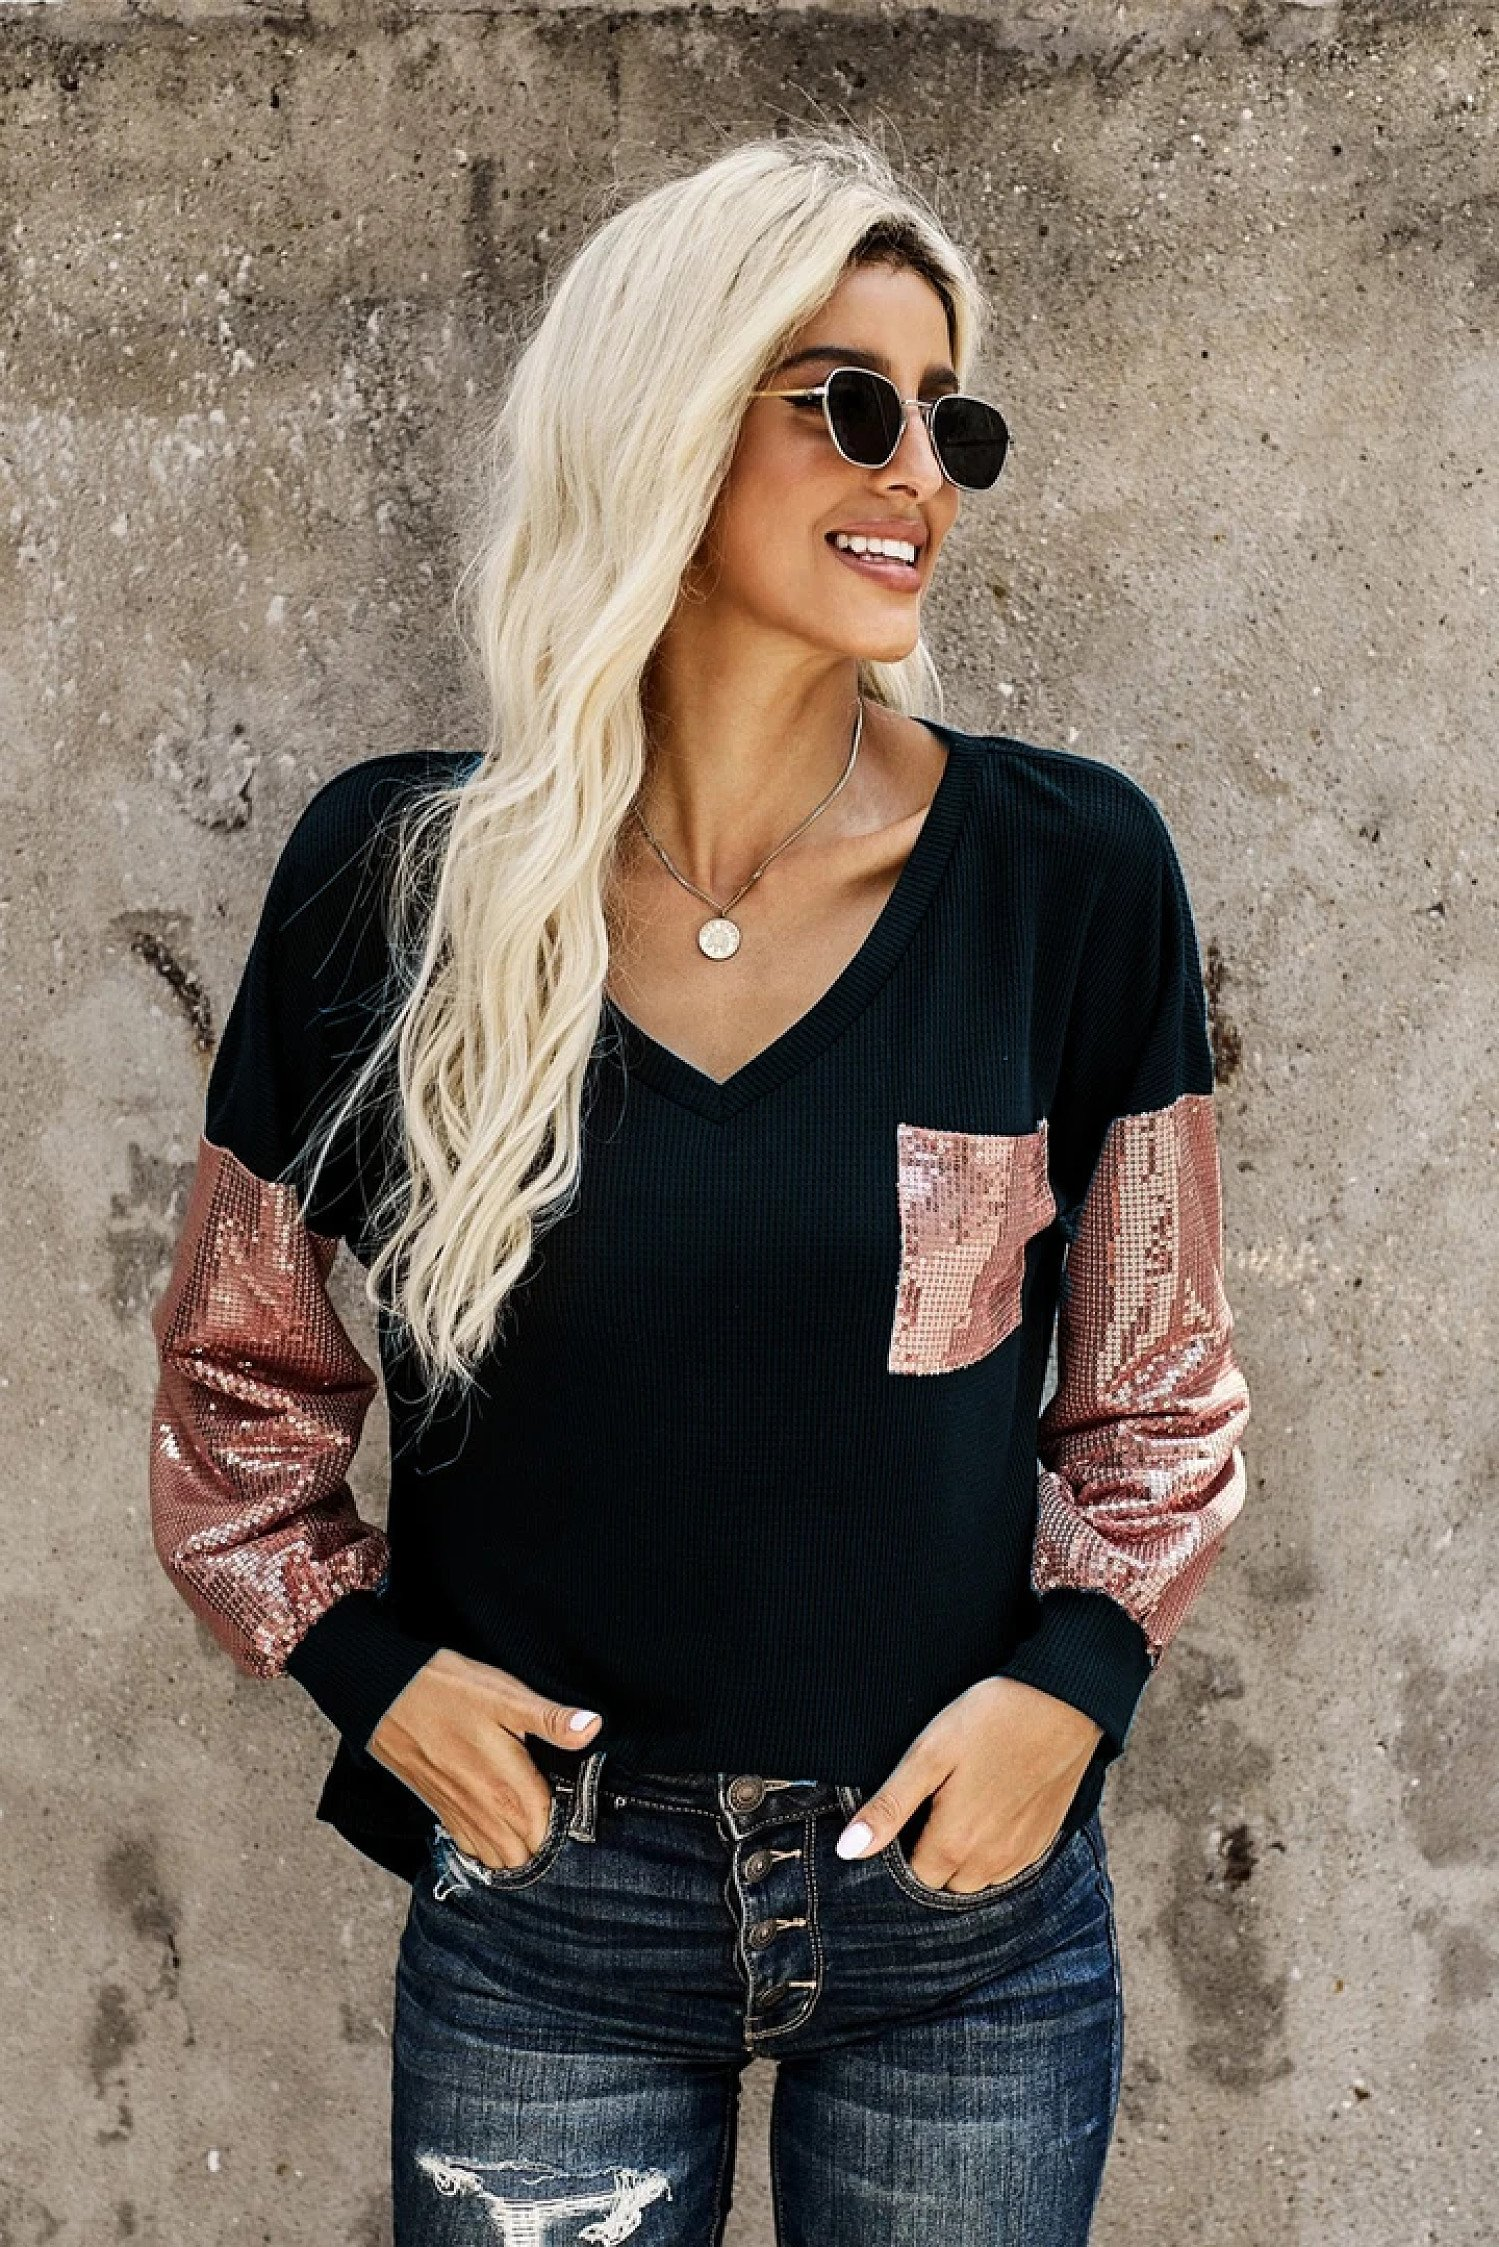 Sequin Splicing V Neck Bishop Sleeves Top £16.99 Free Postage